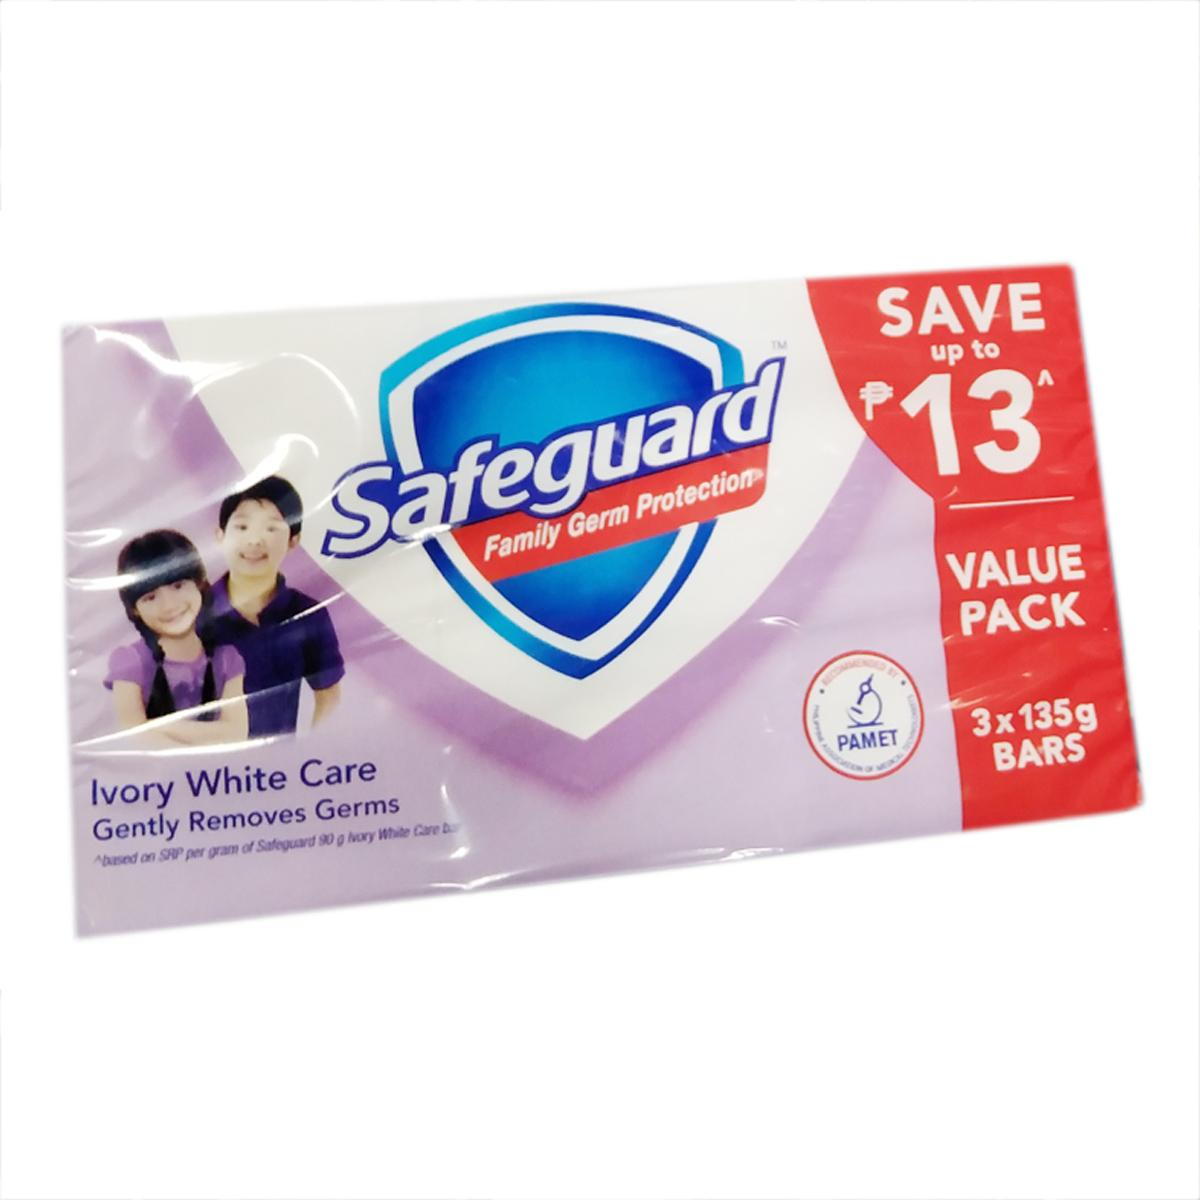 SAFEGUARD Family Germ Protection 135g x 3pcs, Ivory White Care